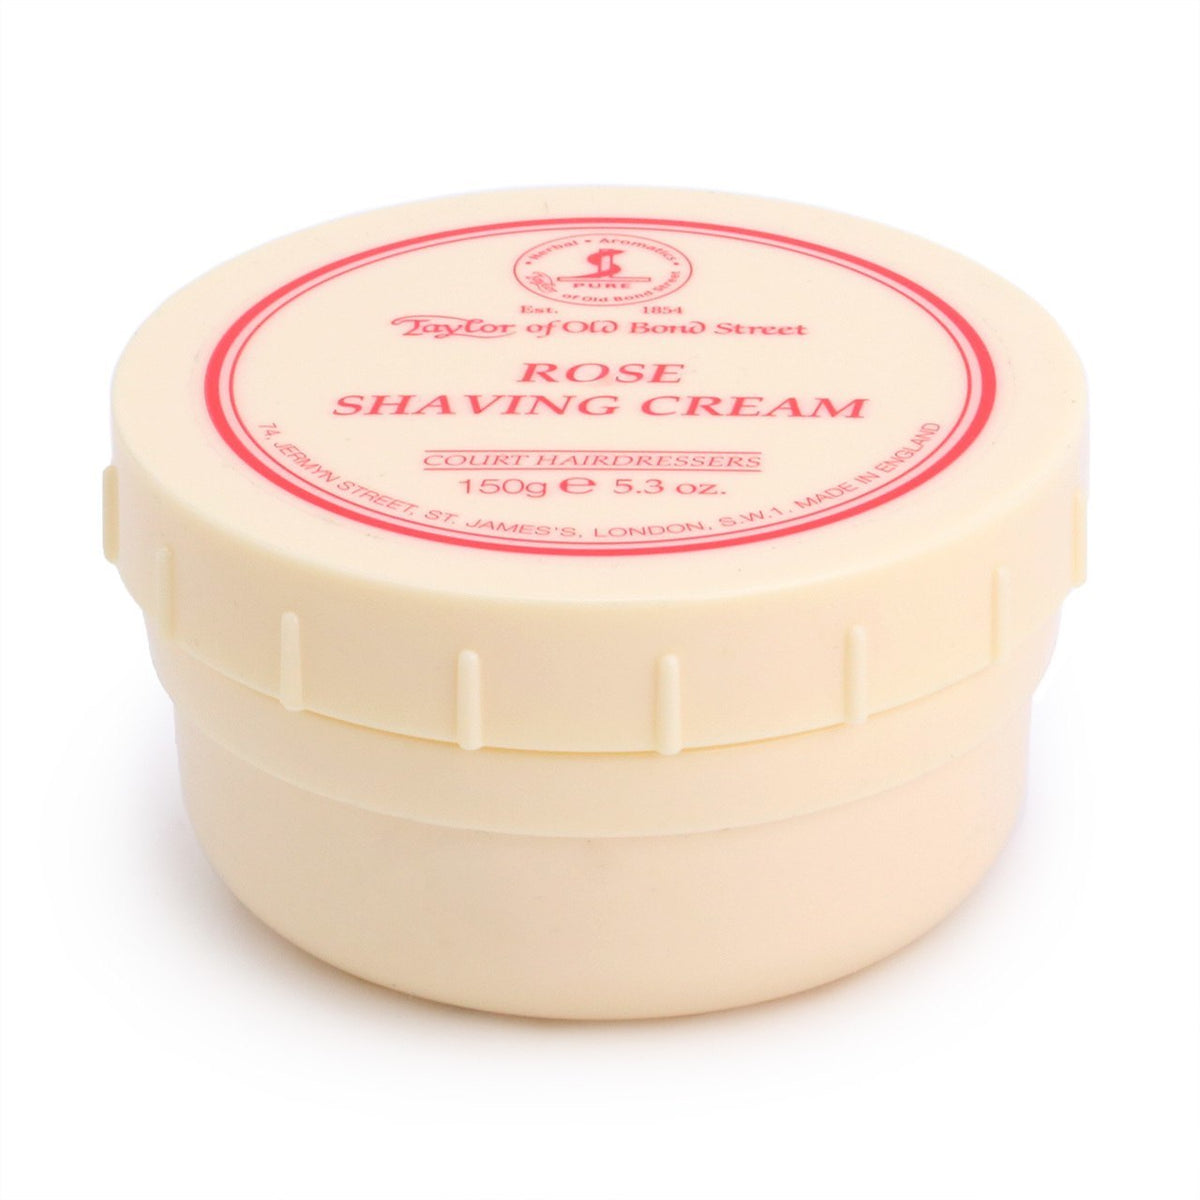 Taylor of Old Bond Street Shaving Cream Bowl 150g - Rose